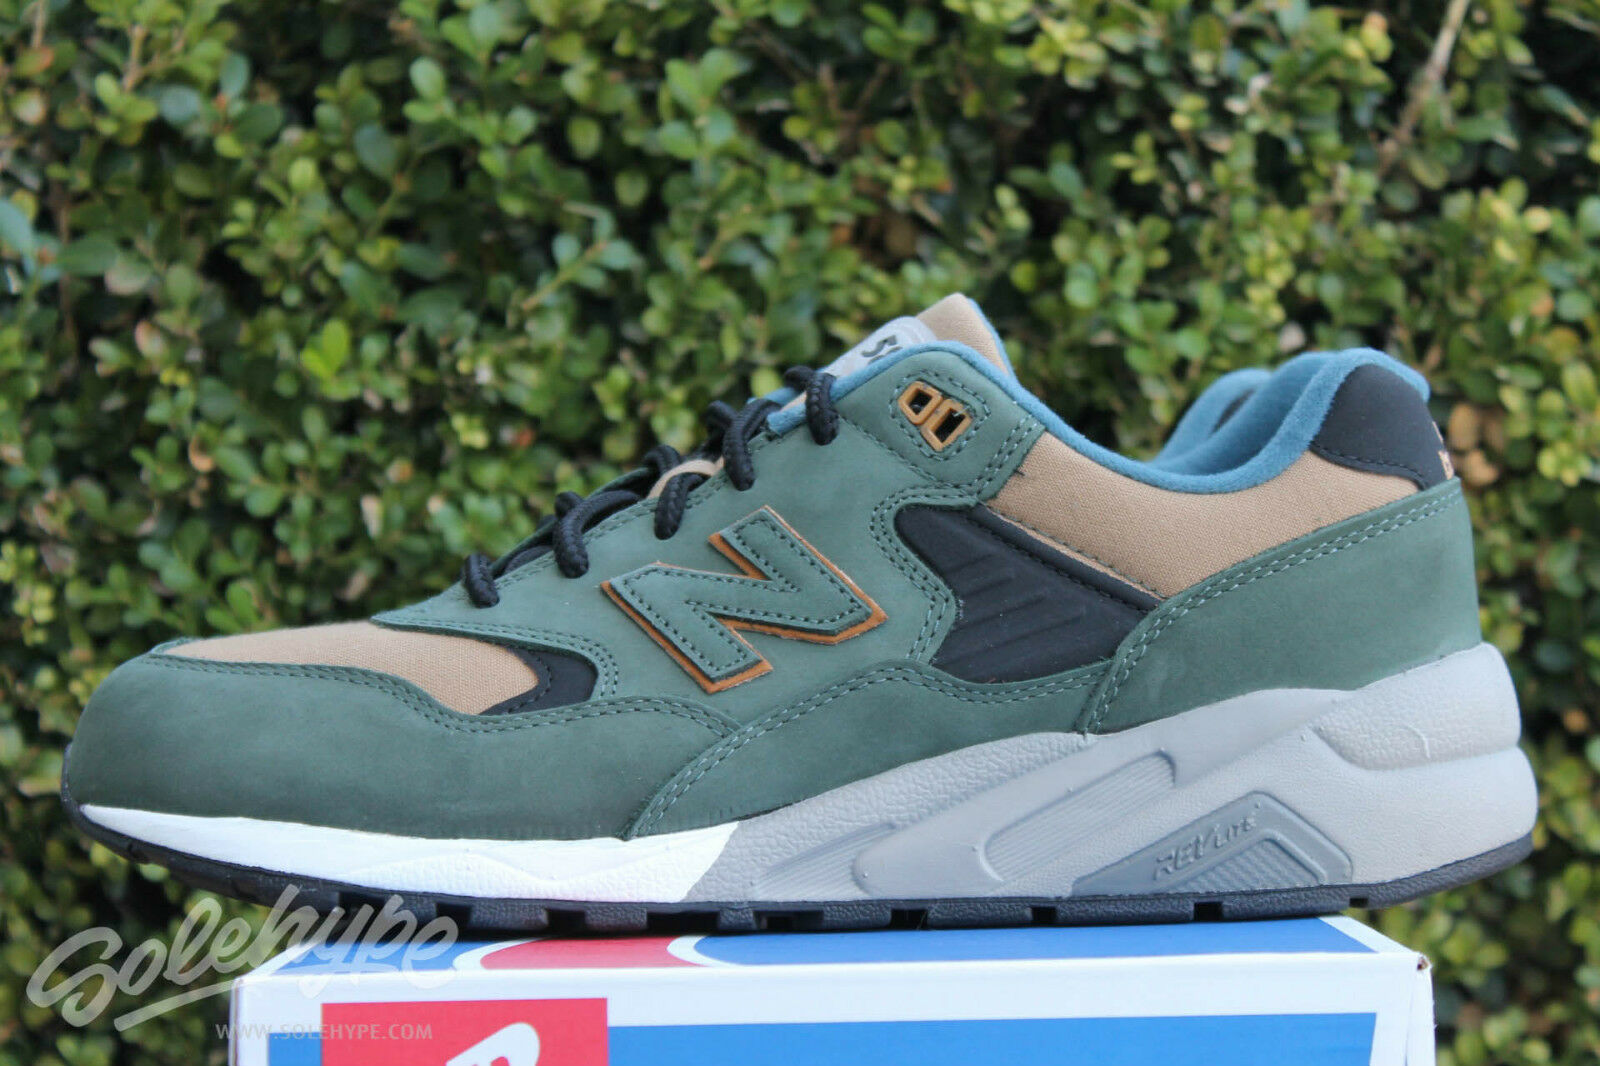 MITA SNEAKERS X NEW BALANCE 580 SZ 7.5 DOUBLE DIME YELLOW OLIVE MRT580KC